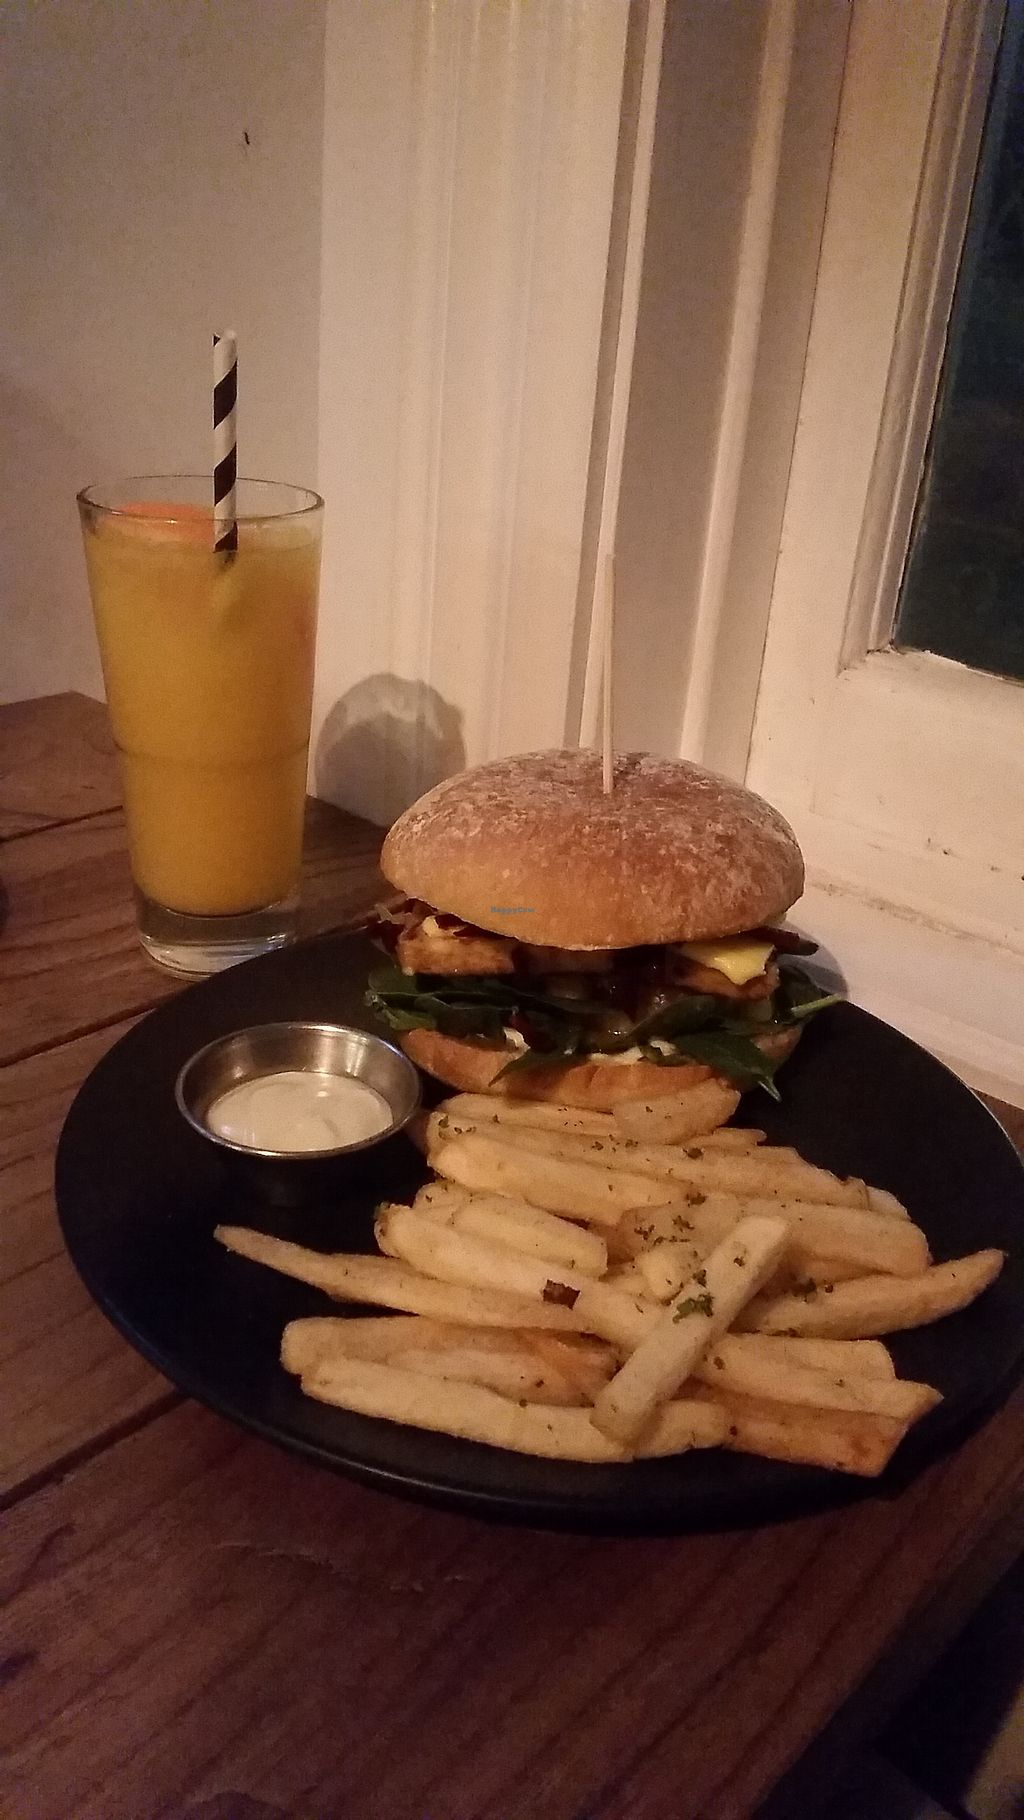 "Photo of The Botanist  by <a href=""/members/profile/AndyTheVWDude"">AndyTheVWDude</a> <br/>The Native Burger ~ Great Pineapple Salsa & Vegan Aioli! <br/> September 5, 2017  - <a href='/contact/abuse/image/88498/300996'>Report</a>"